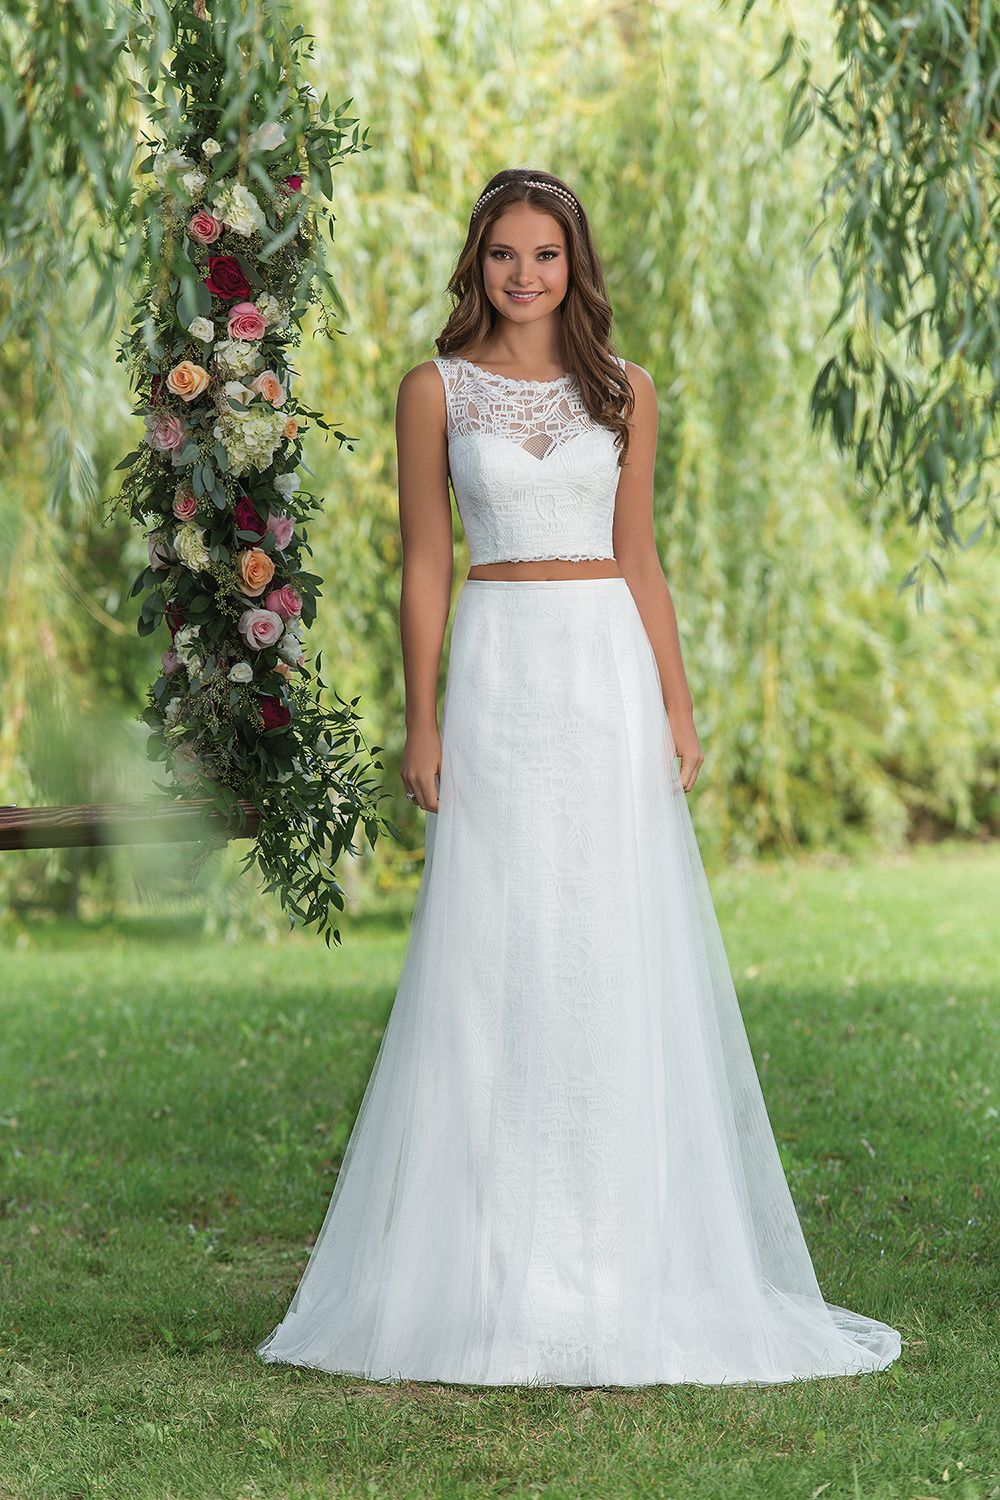 Sweetheart Gowns Style 6140 Ivory Size 8 An Adorable English Net And Lace Cropped Top Skirt Set With A Sabrina Neckline Architectural